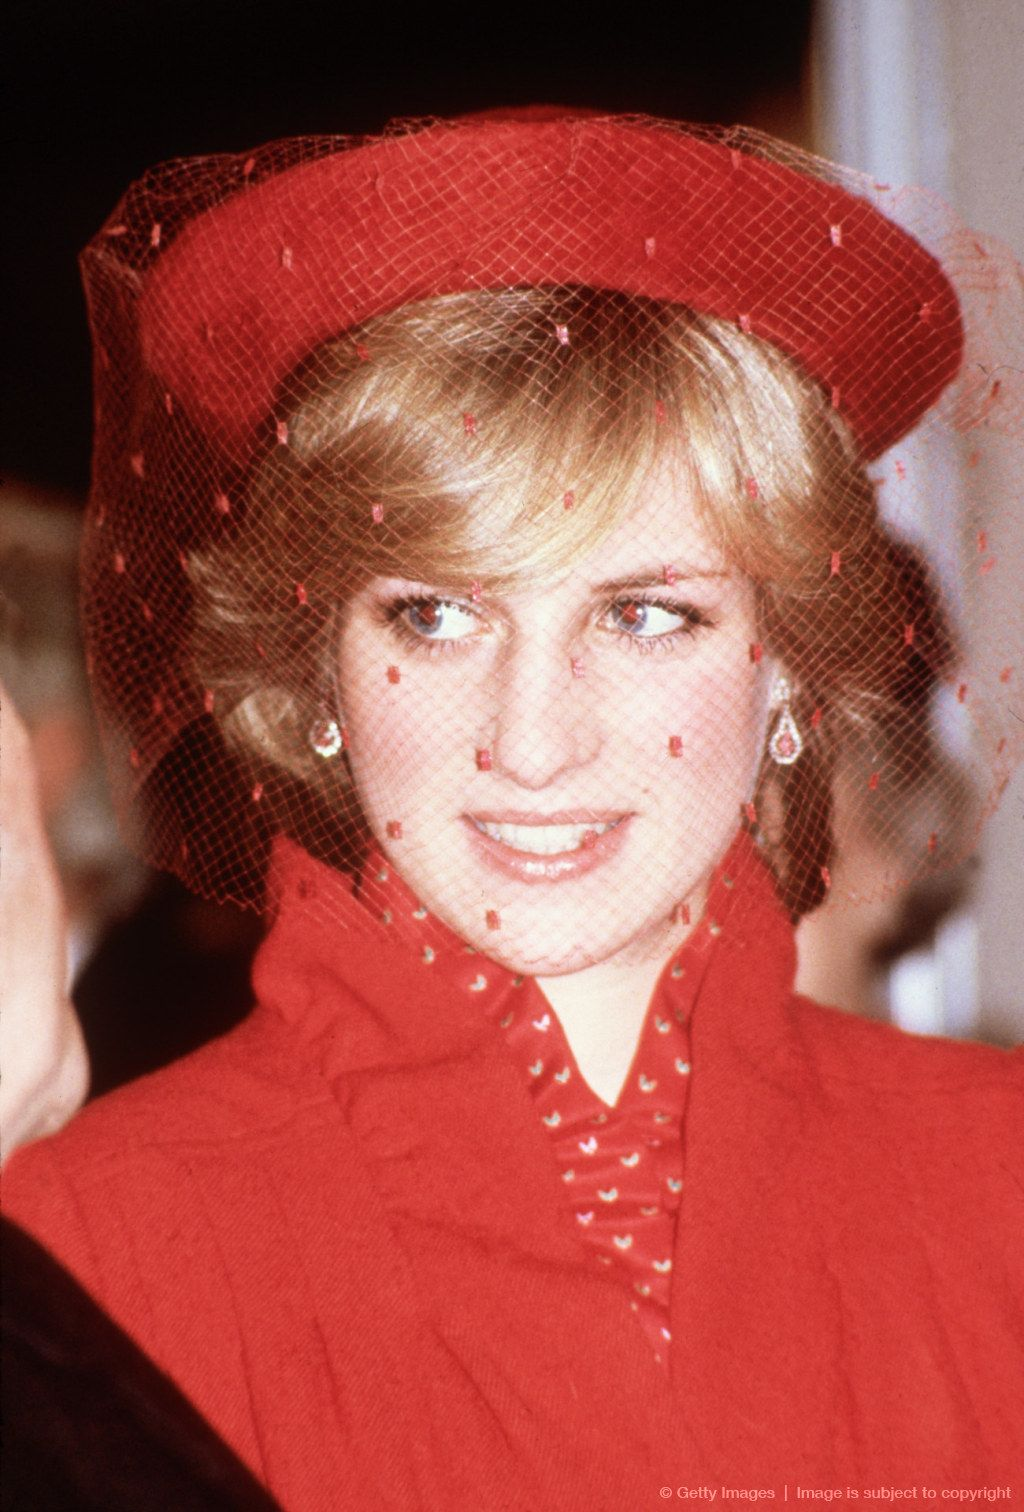 Image detail for -GUILDFORD - DECEMBER 21: Diana Princess of Wales during a visit to Guildford Cathedral on December 21,1981 in Guildford, Surrey.